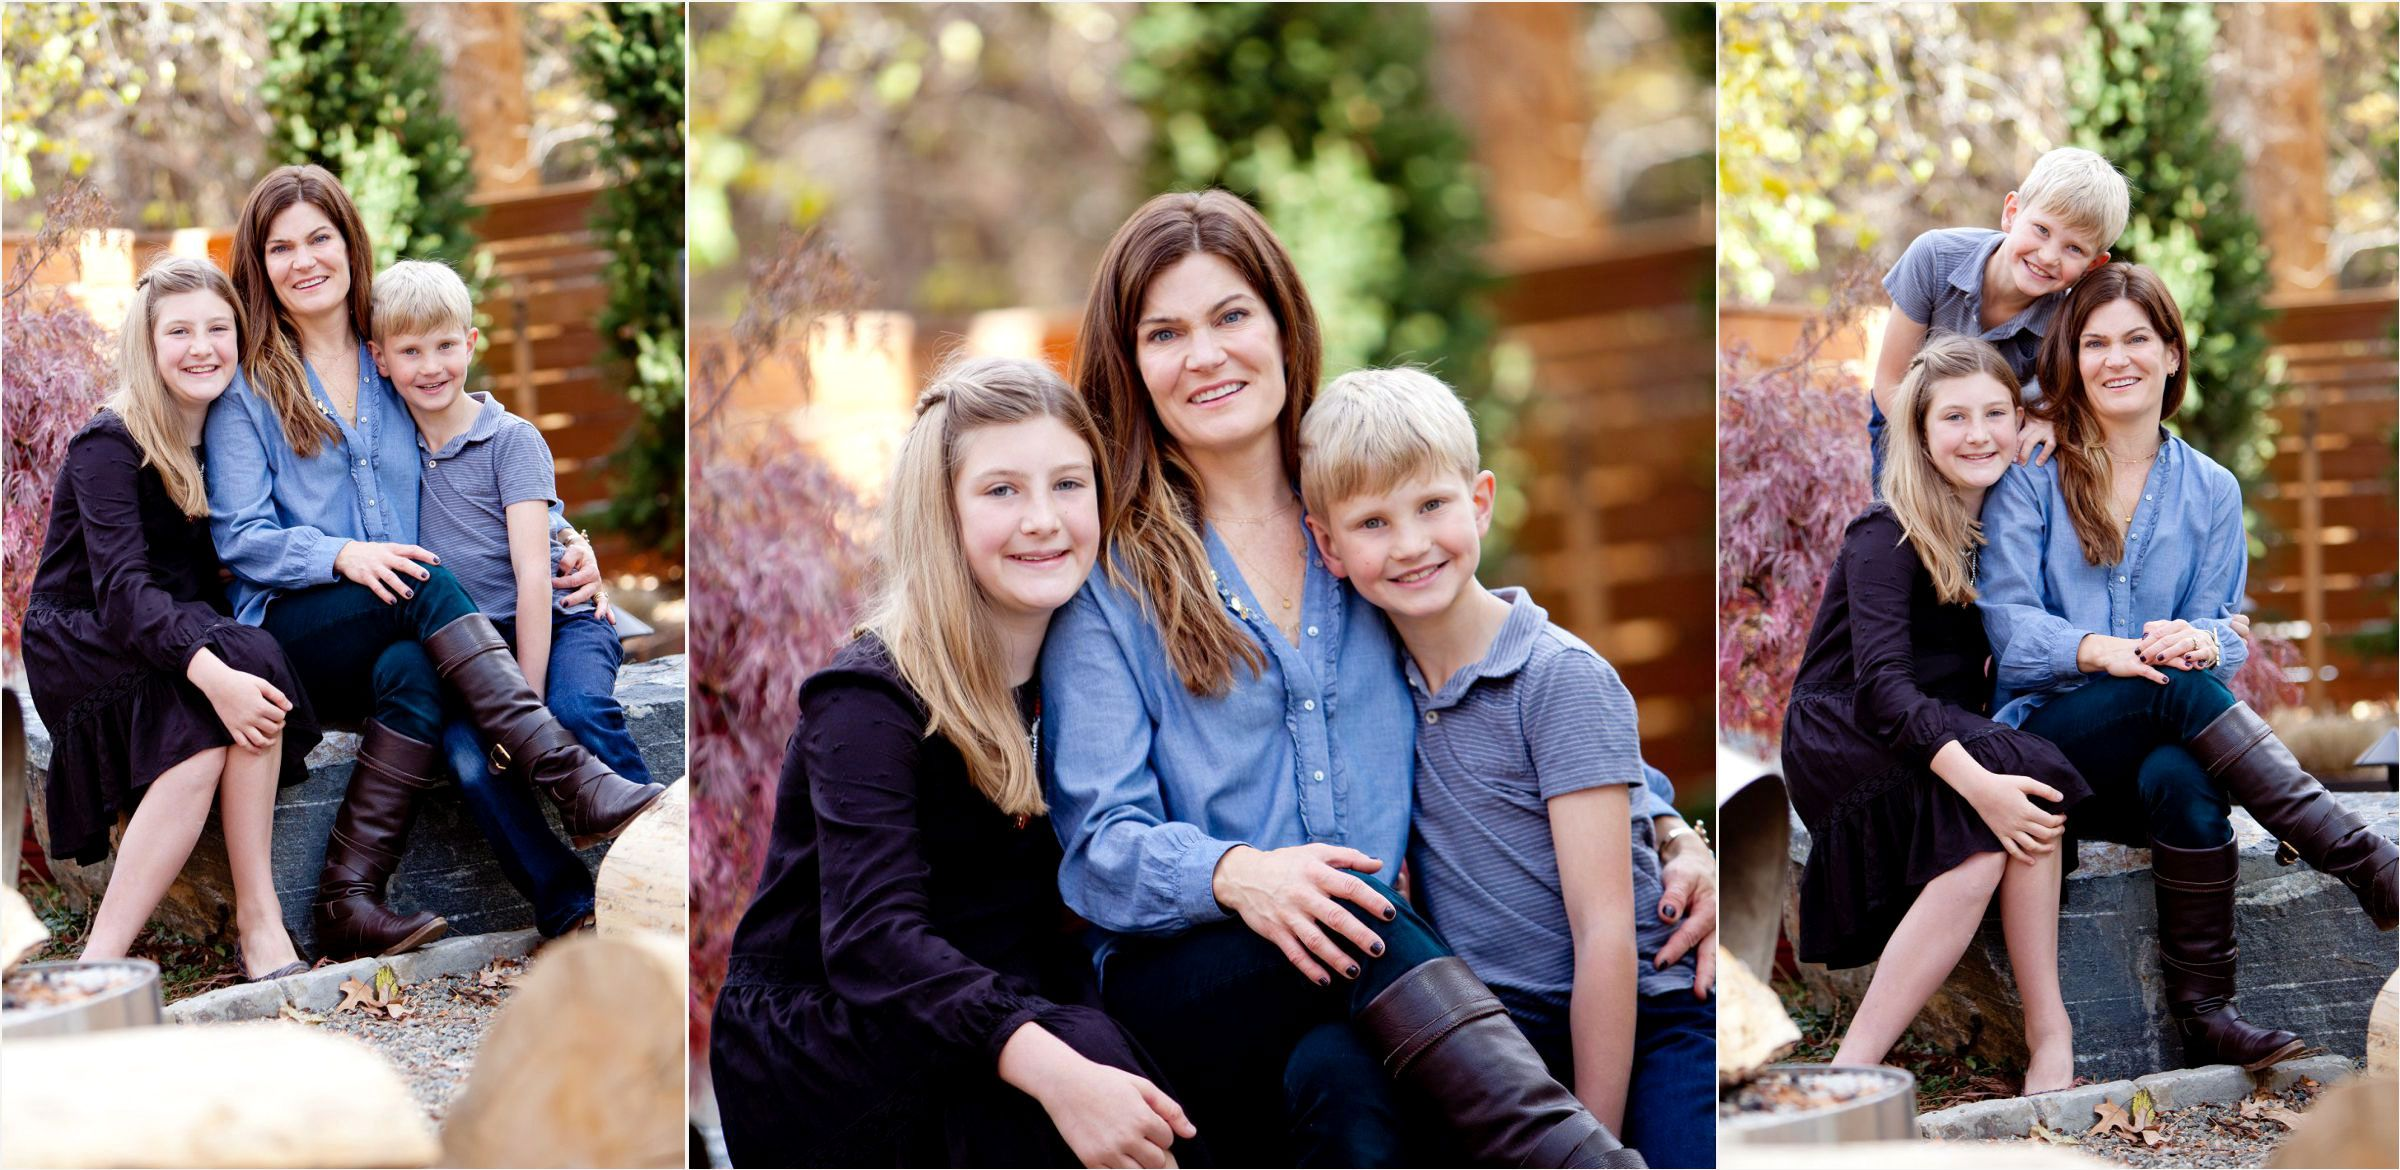 mother-and-children-pose-in-their-home-backyard-during-a-photo-shoot-006